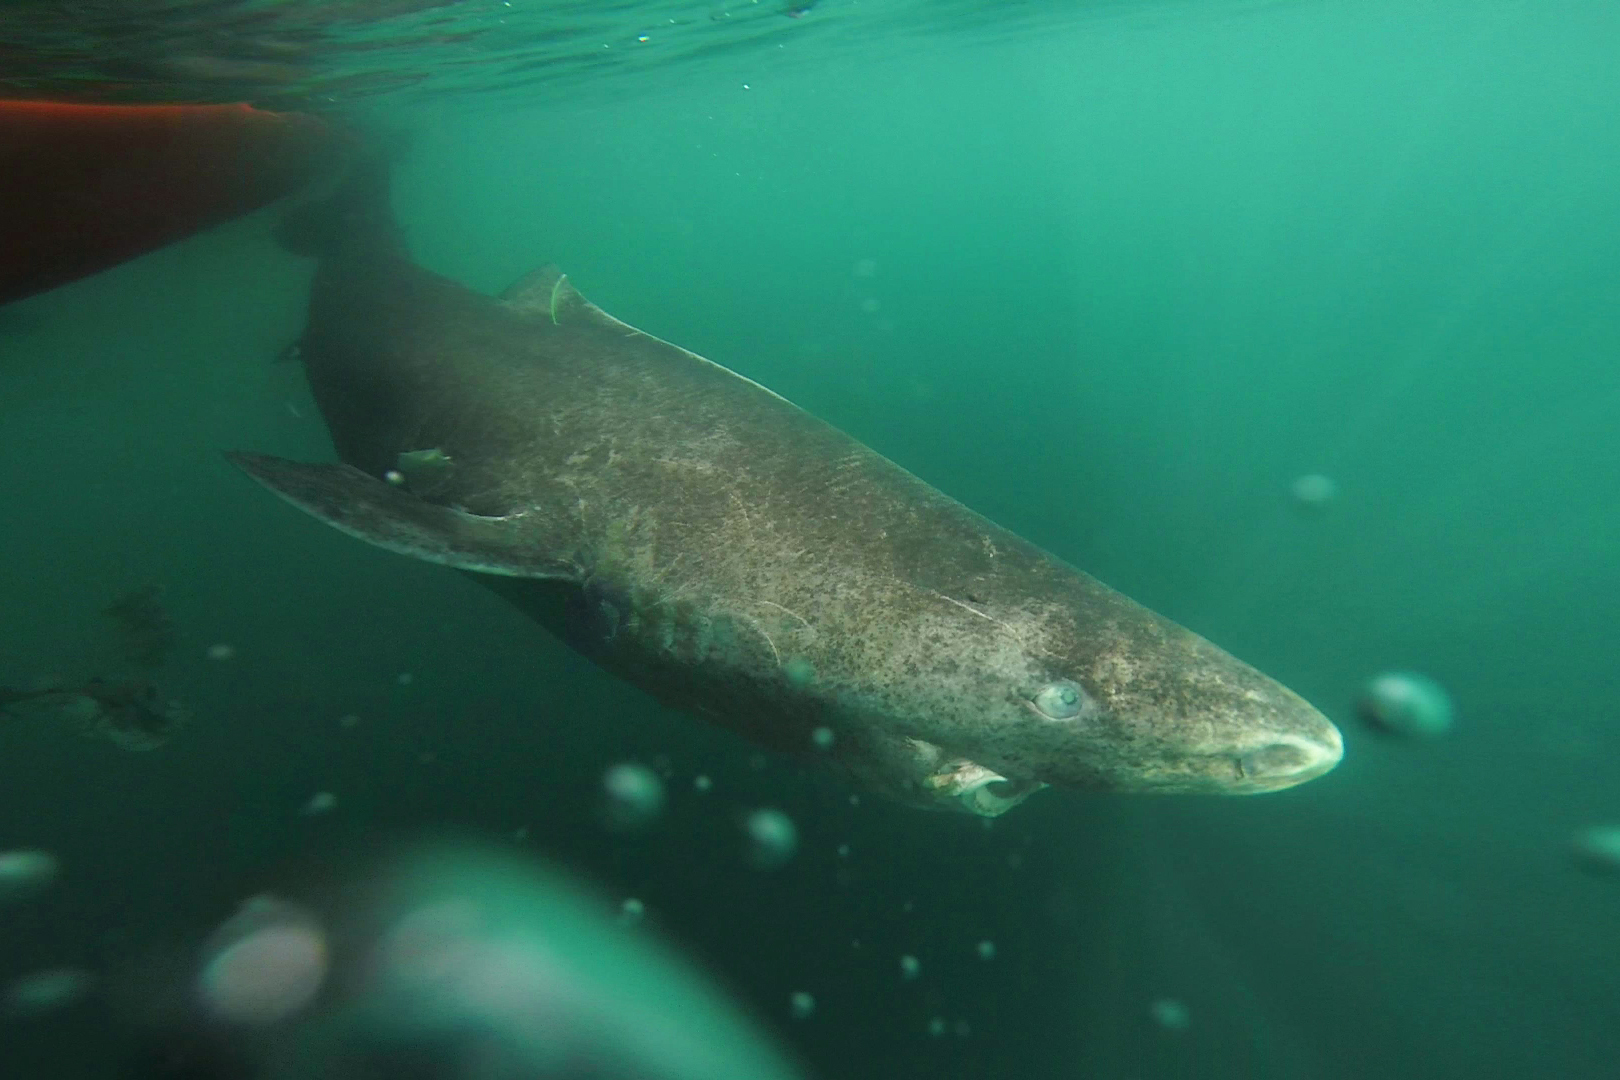 The eyes tell the tale:  Greenland sharks may live to be 400 years old